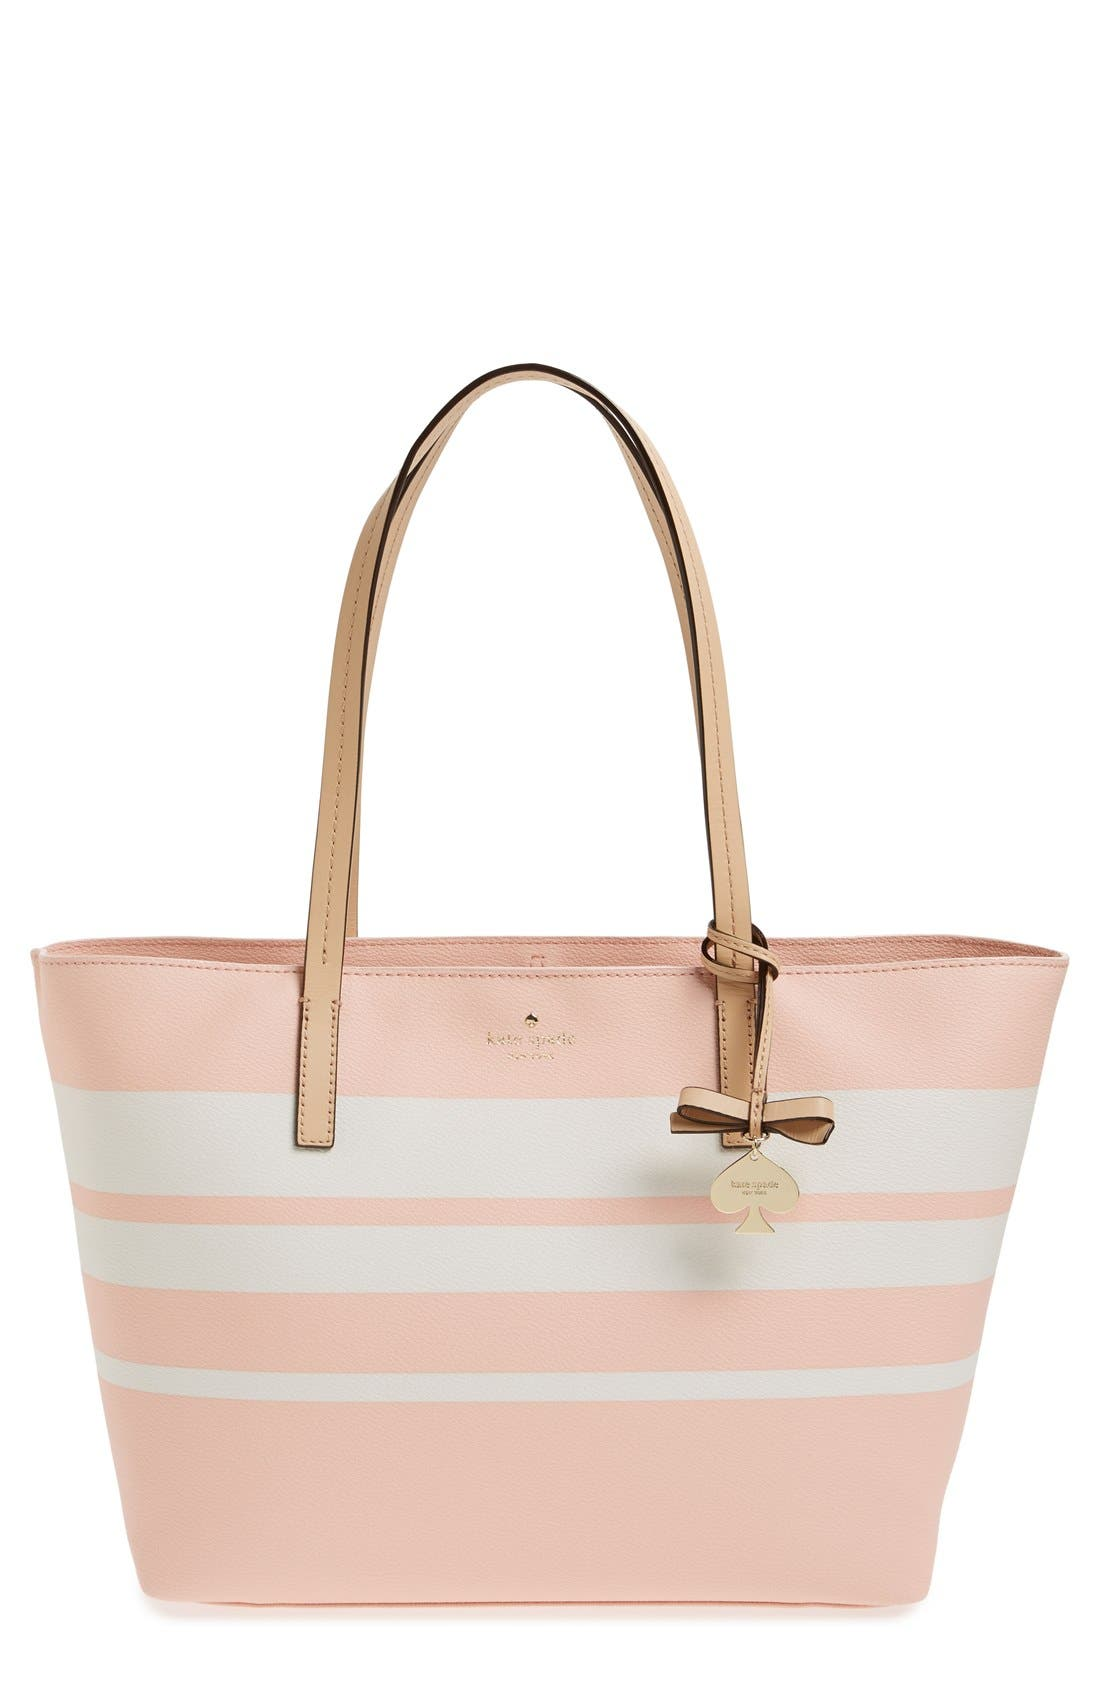 Alternate Image 1 Selected - kate spade new york 'hawthorne lane - ryan' tote (Nordstrom Exclusive)